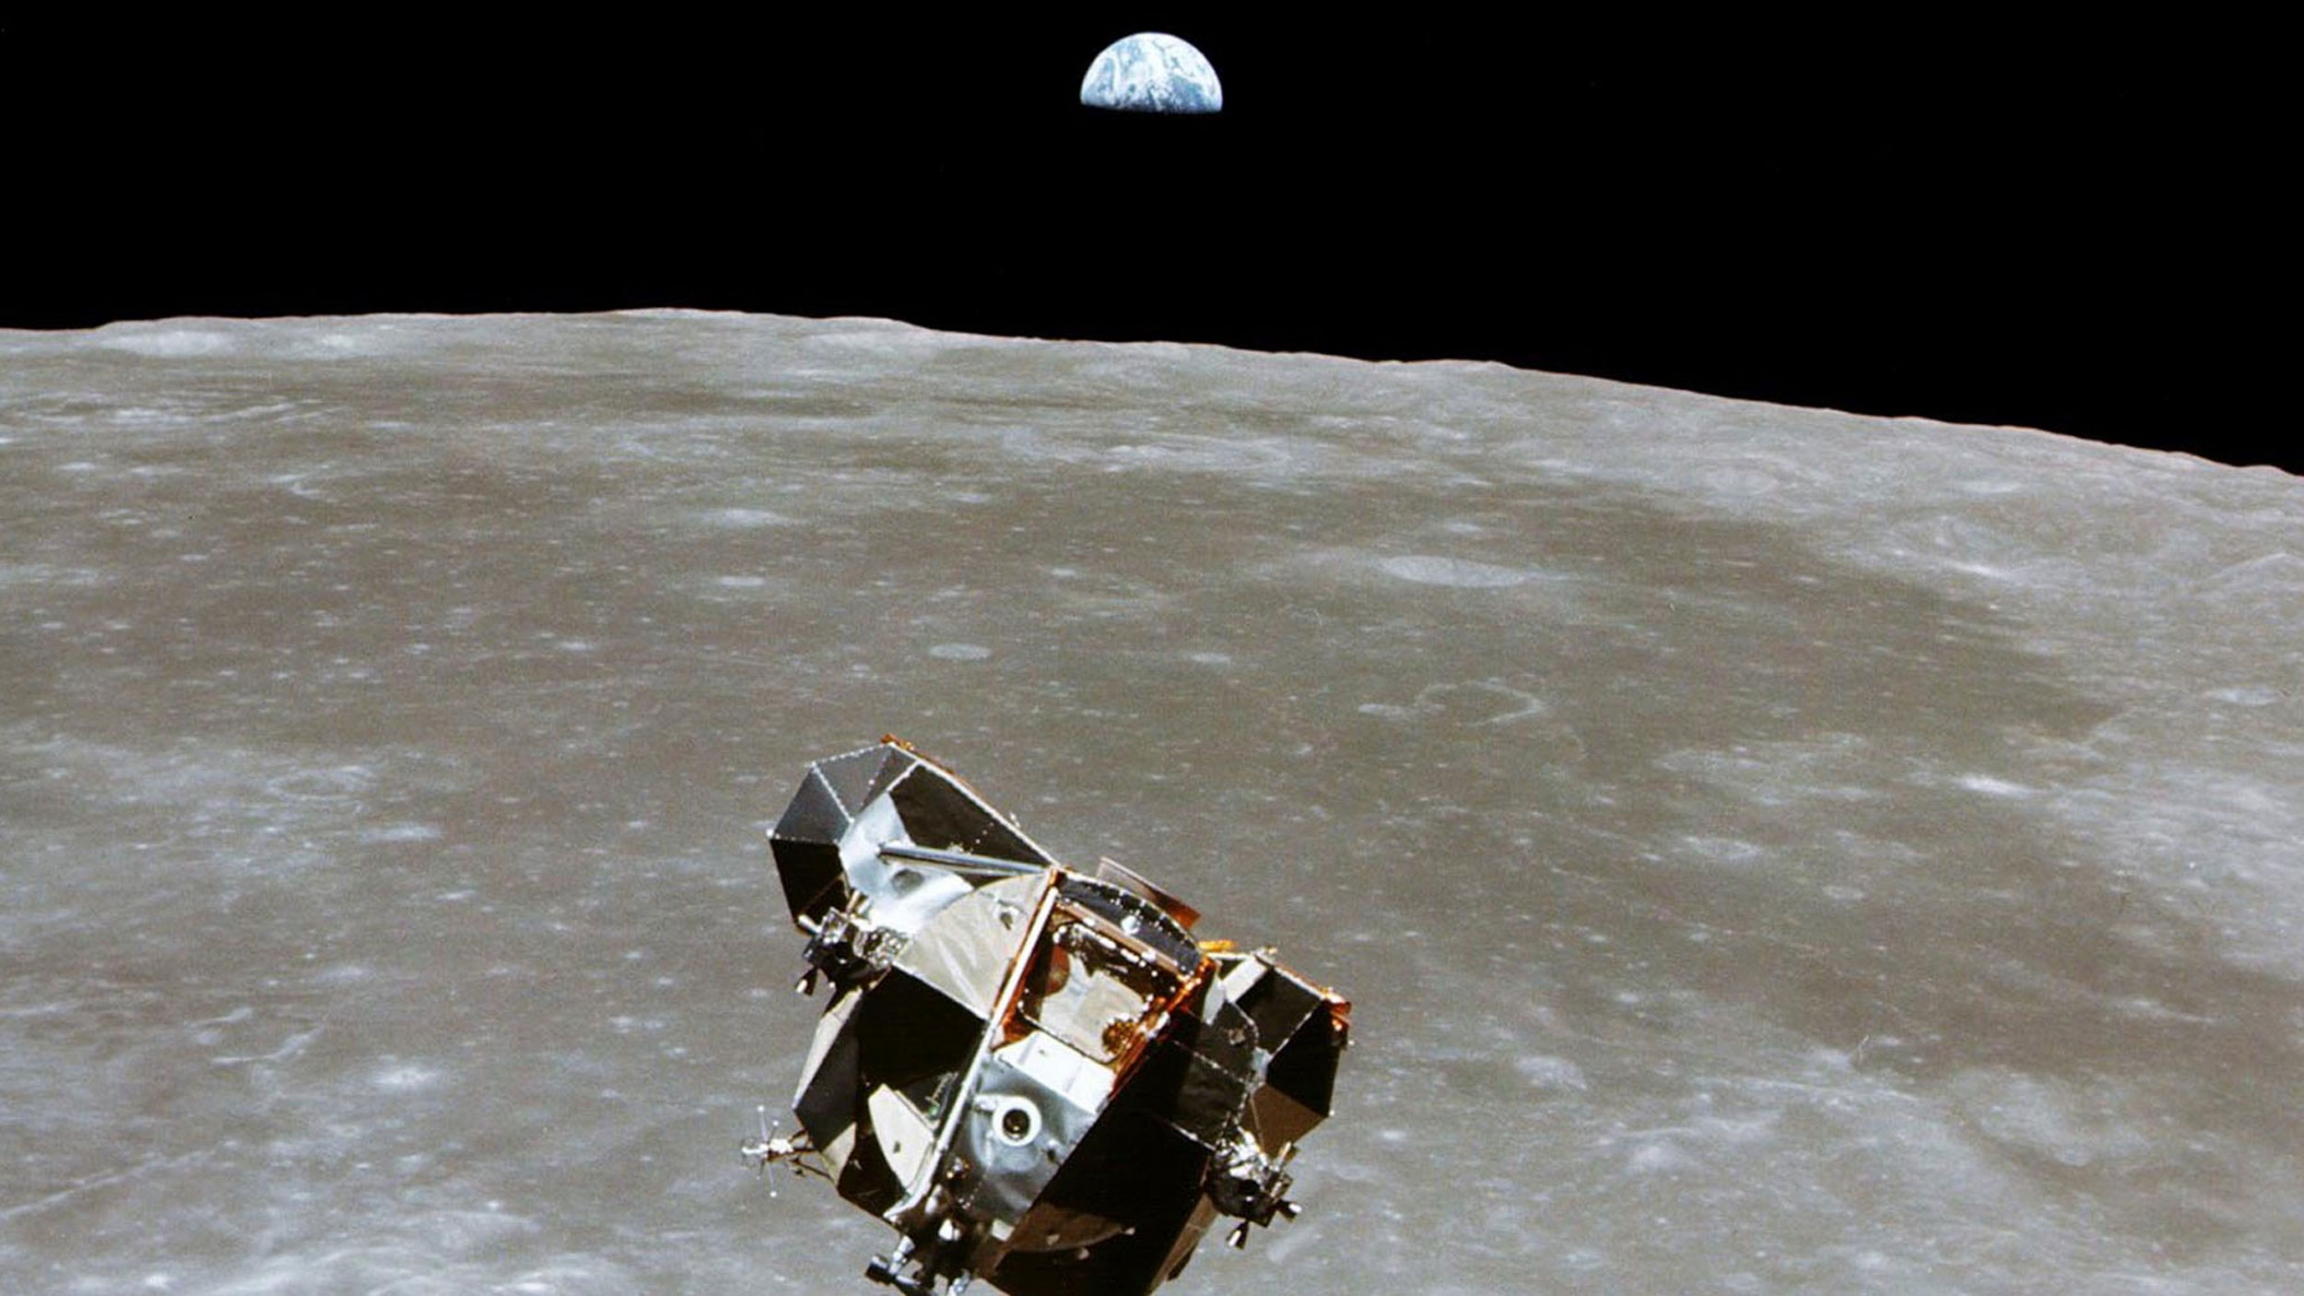 The Apollo 11 Lunar Module is shown in the nearground with the moon's surface below it and Earth shown in the distance.